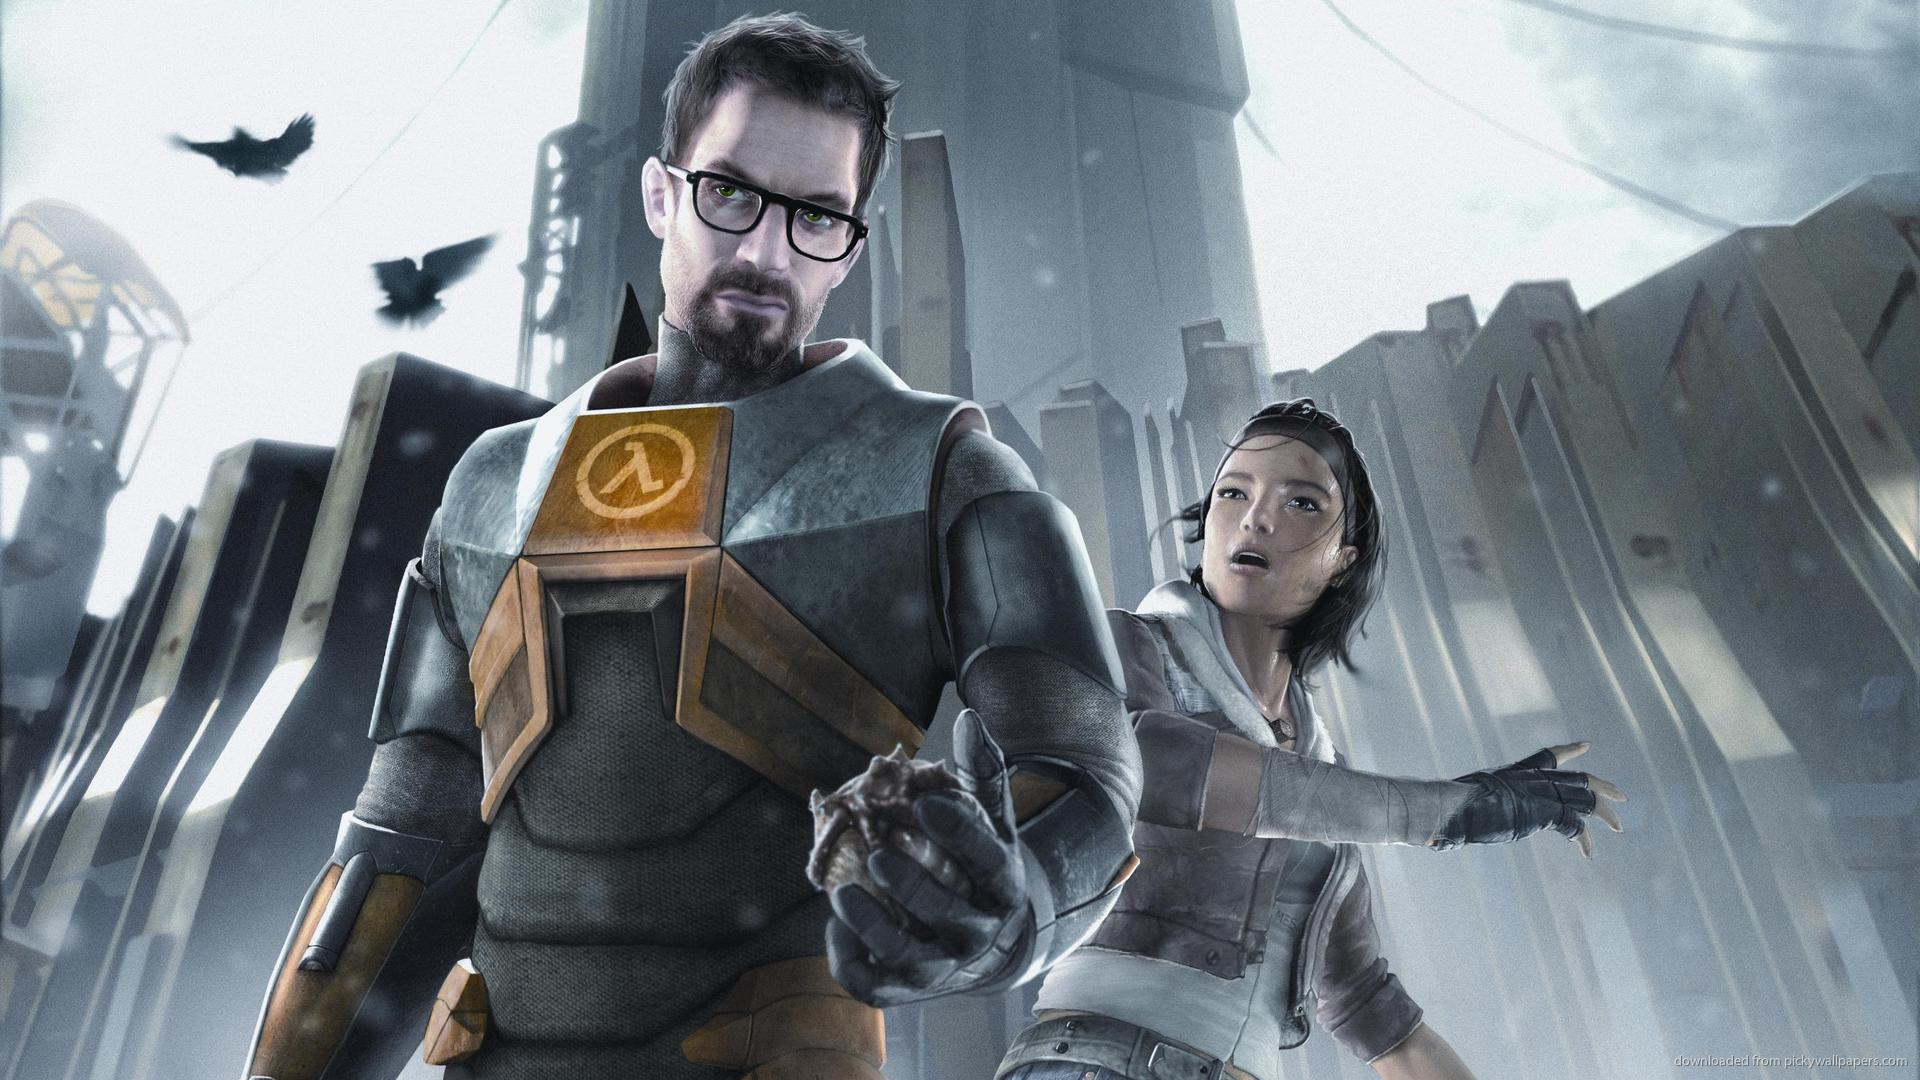 Steam Database leak reveals Half-Life 3, Final Fantasy X and more